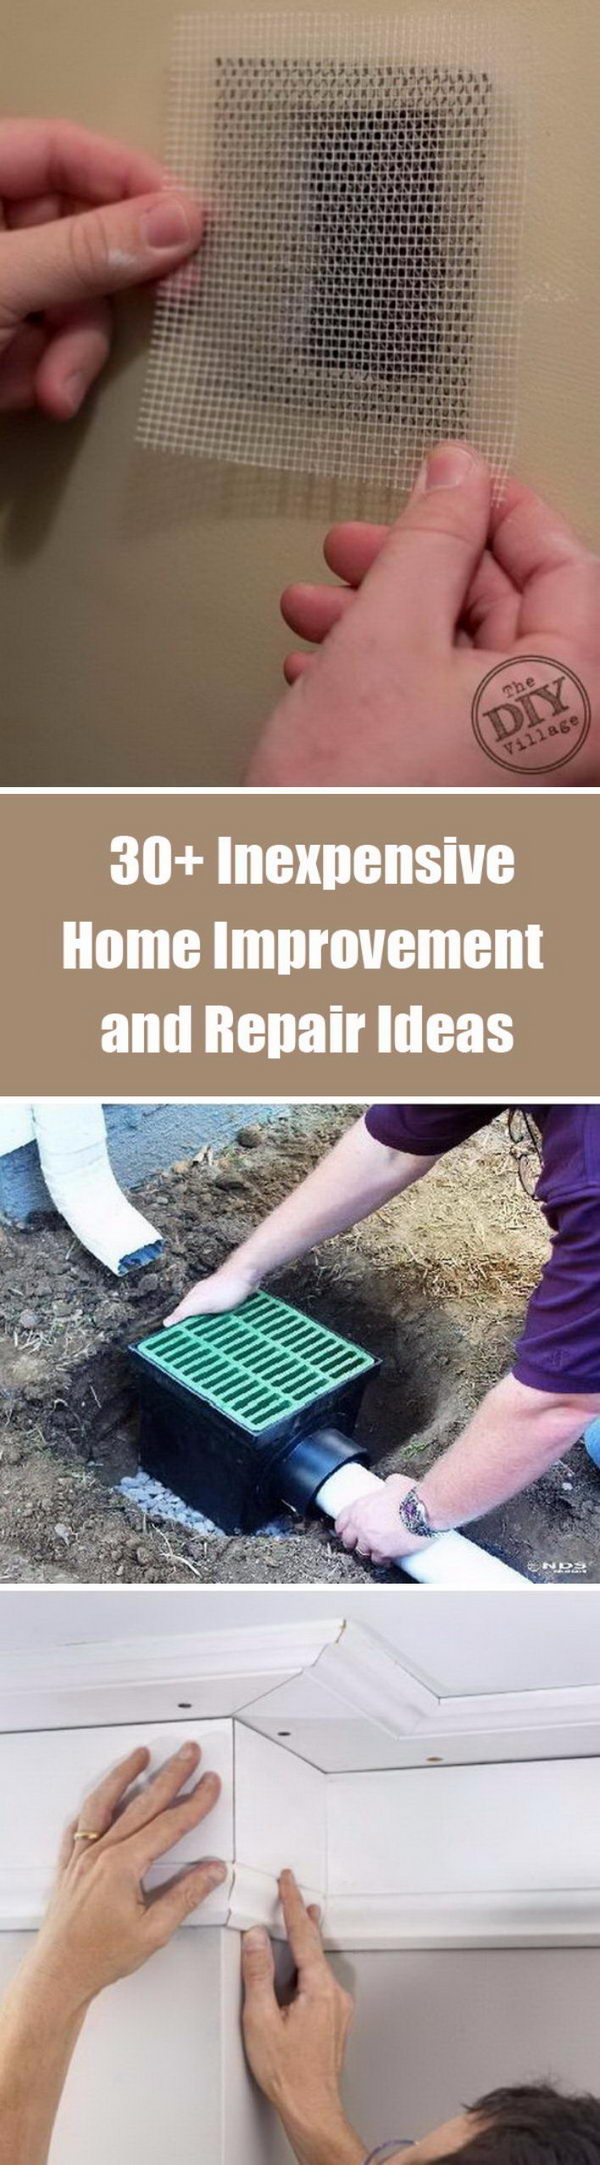 Inexpensive Home Improvement and Repair Ideas.